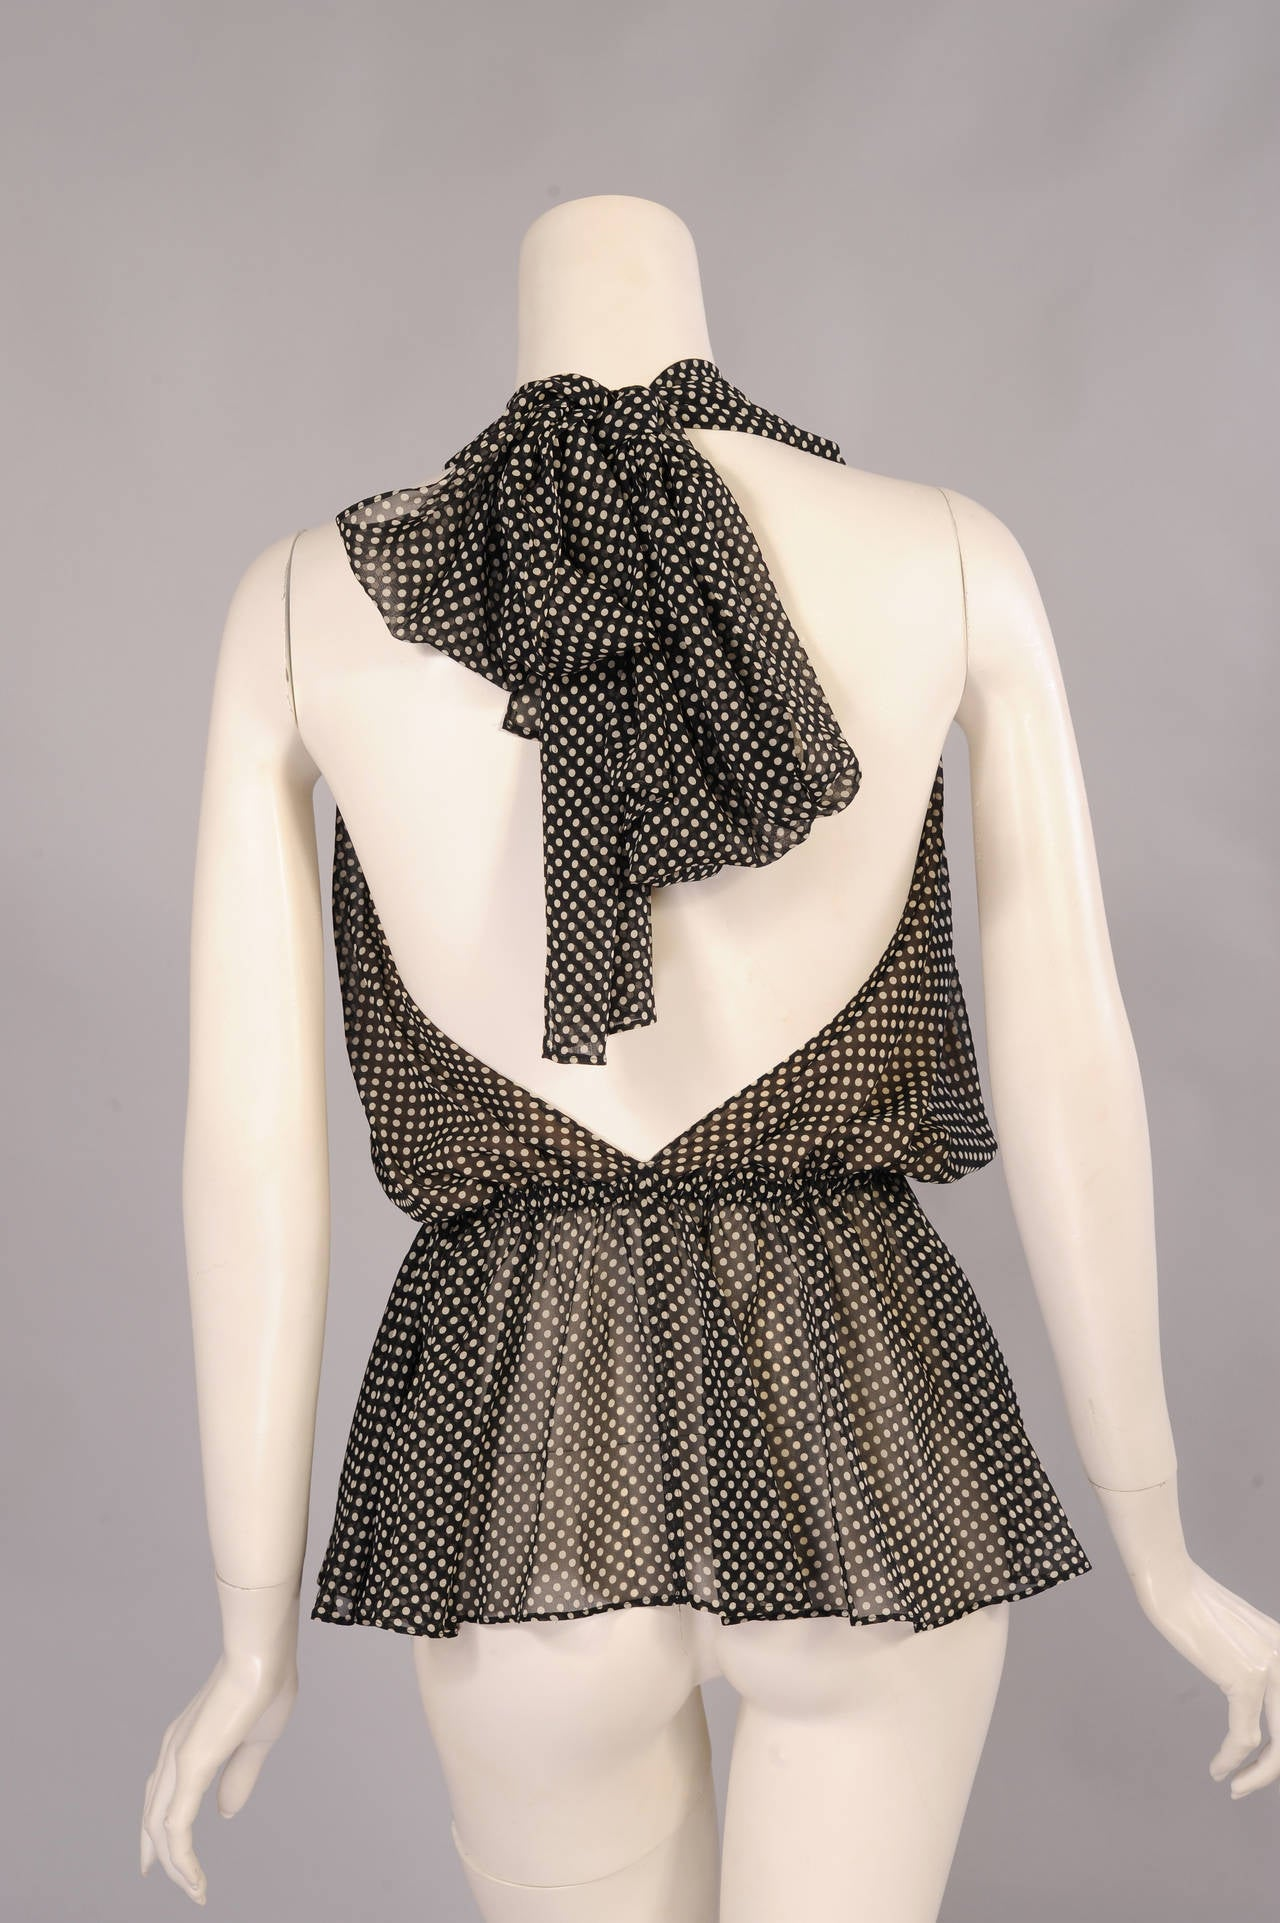 Yves Saint Laurent Polka Dot Chiffon Halter Top 3